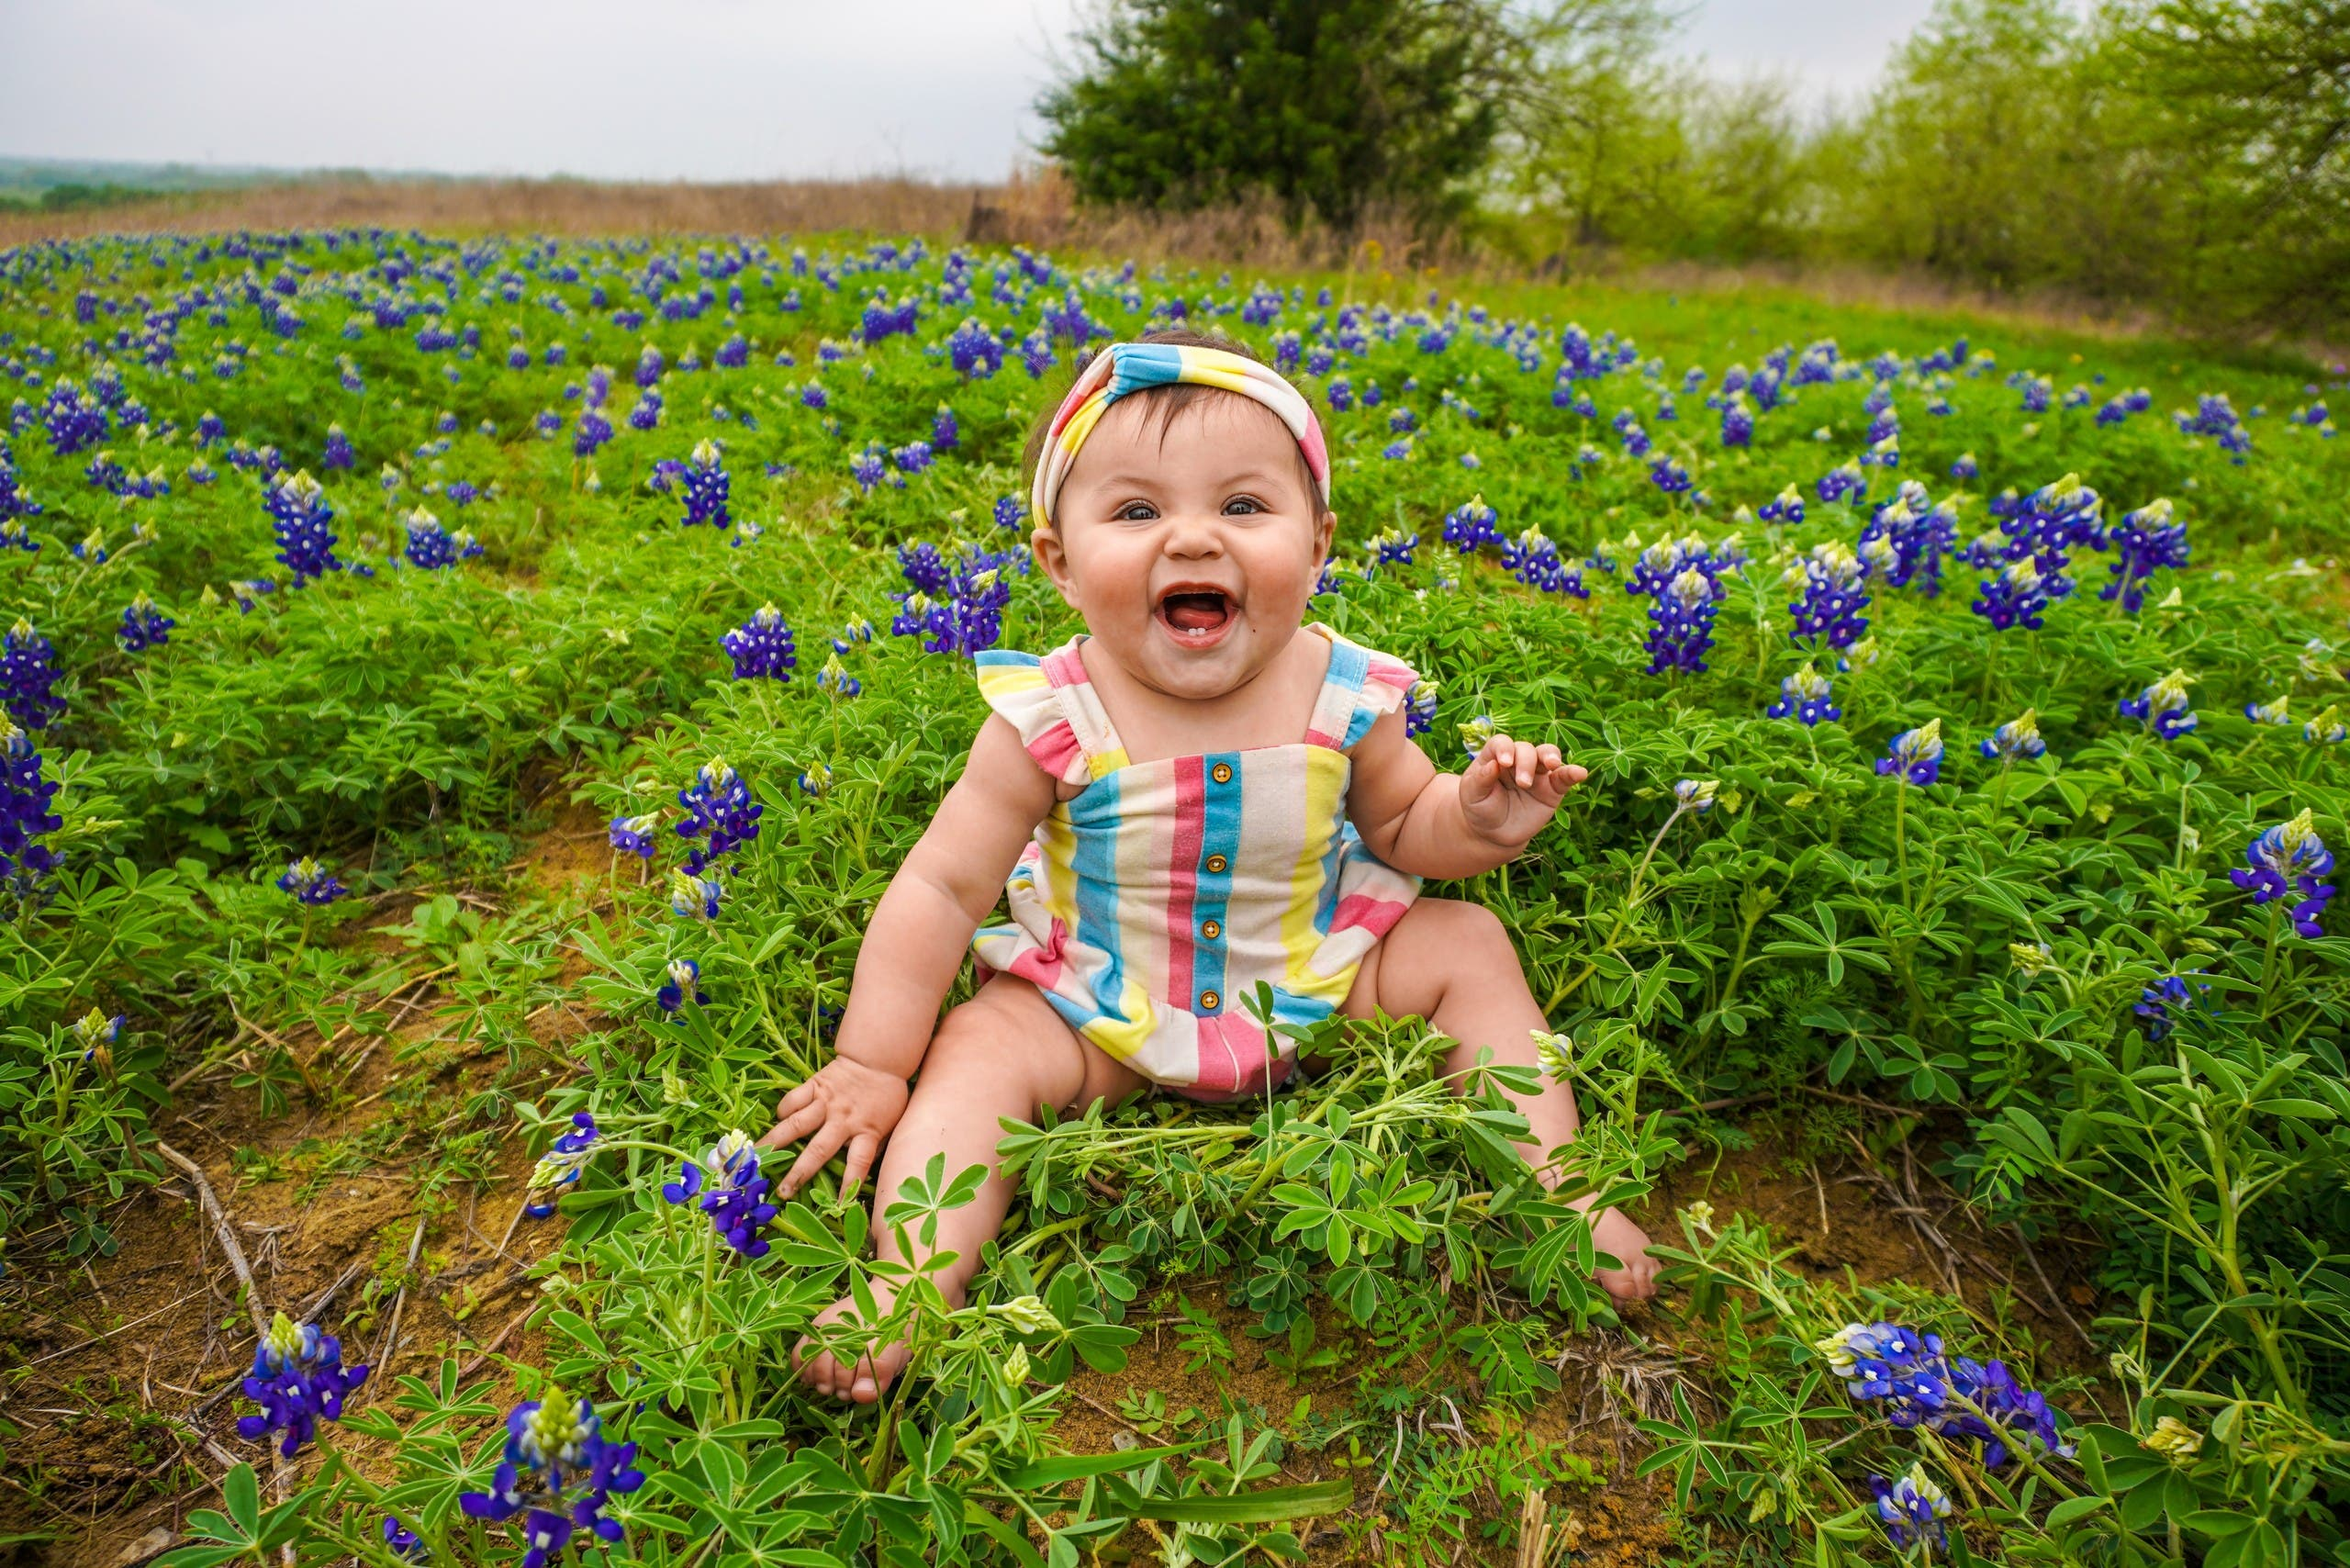 A baby is pictured sitting on grass and laughing. (Unsplash, Danny de los Reyes)